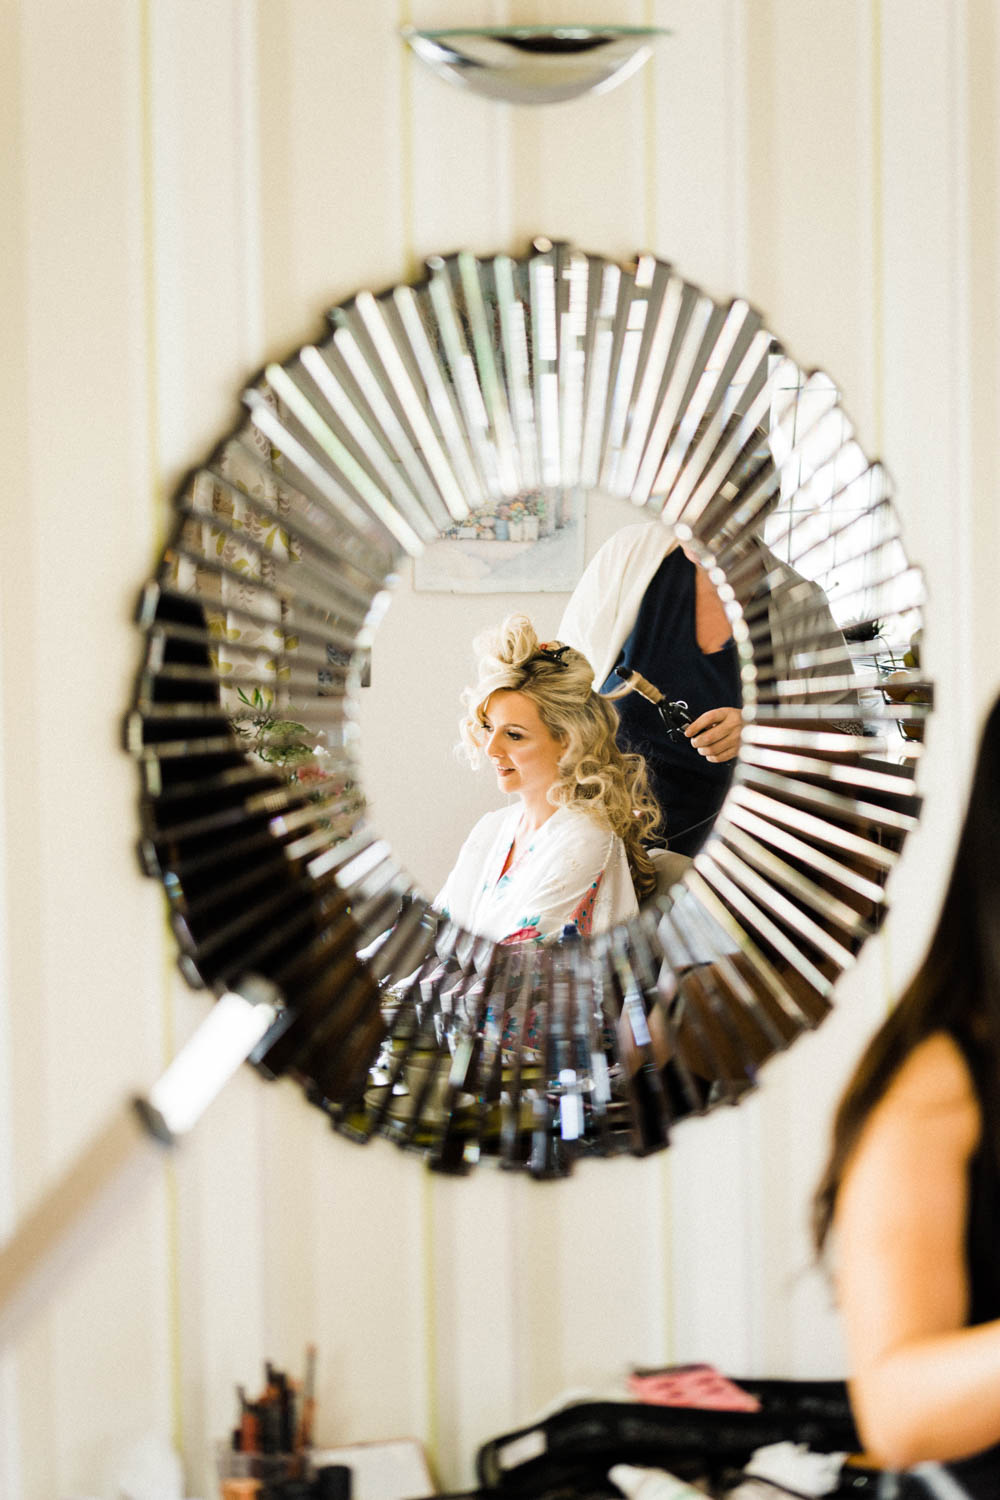 Special-Day-Photography-The-Manor-House-Hotel-Moreton-in-Marsh-Moreton-In-Marsh-Summer-Wedding-The-bride-getting-ready-mirror-reflection-photograph.jpg